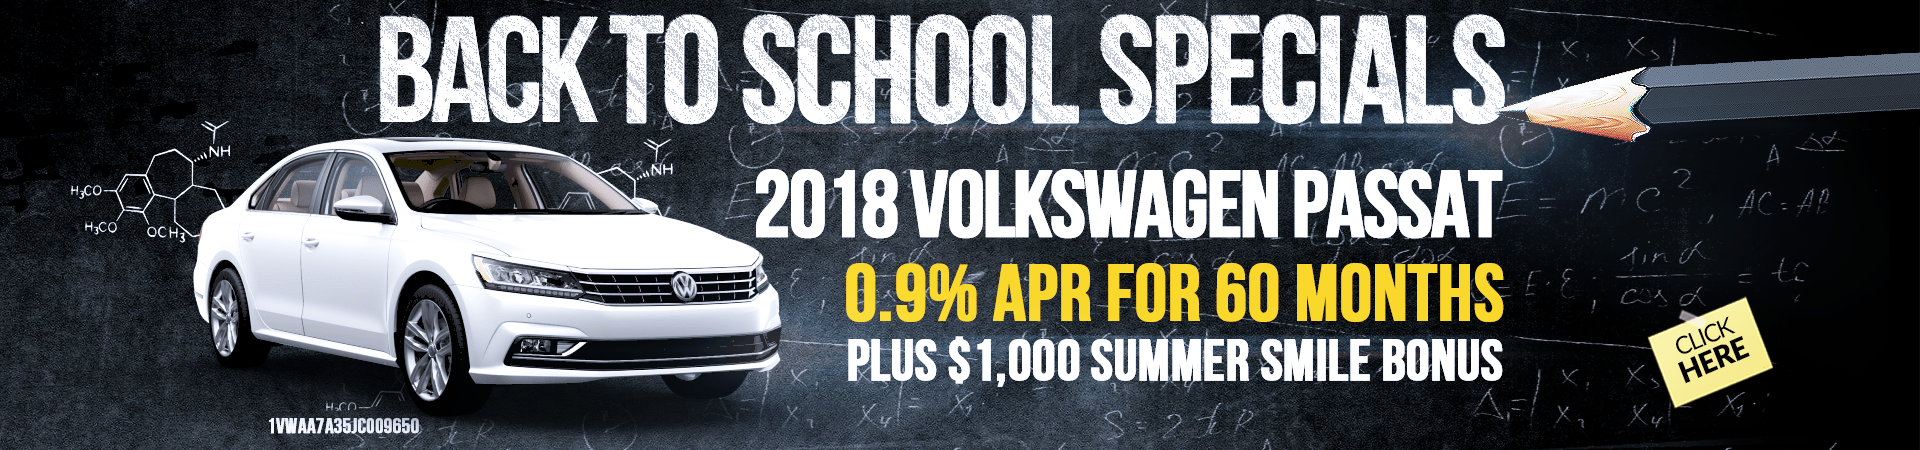 2018 Vw Passat Offer